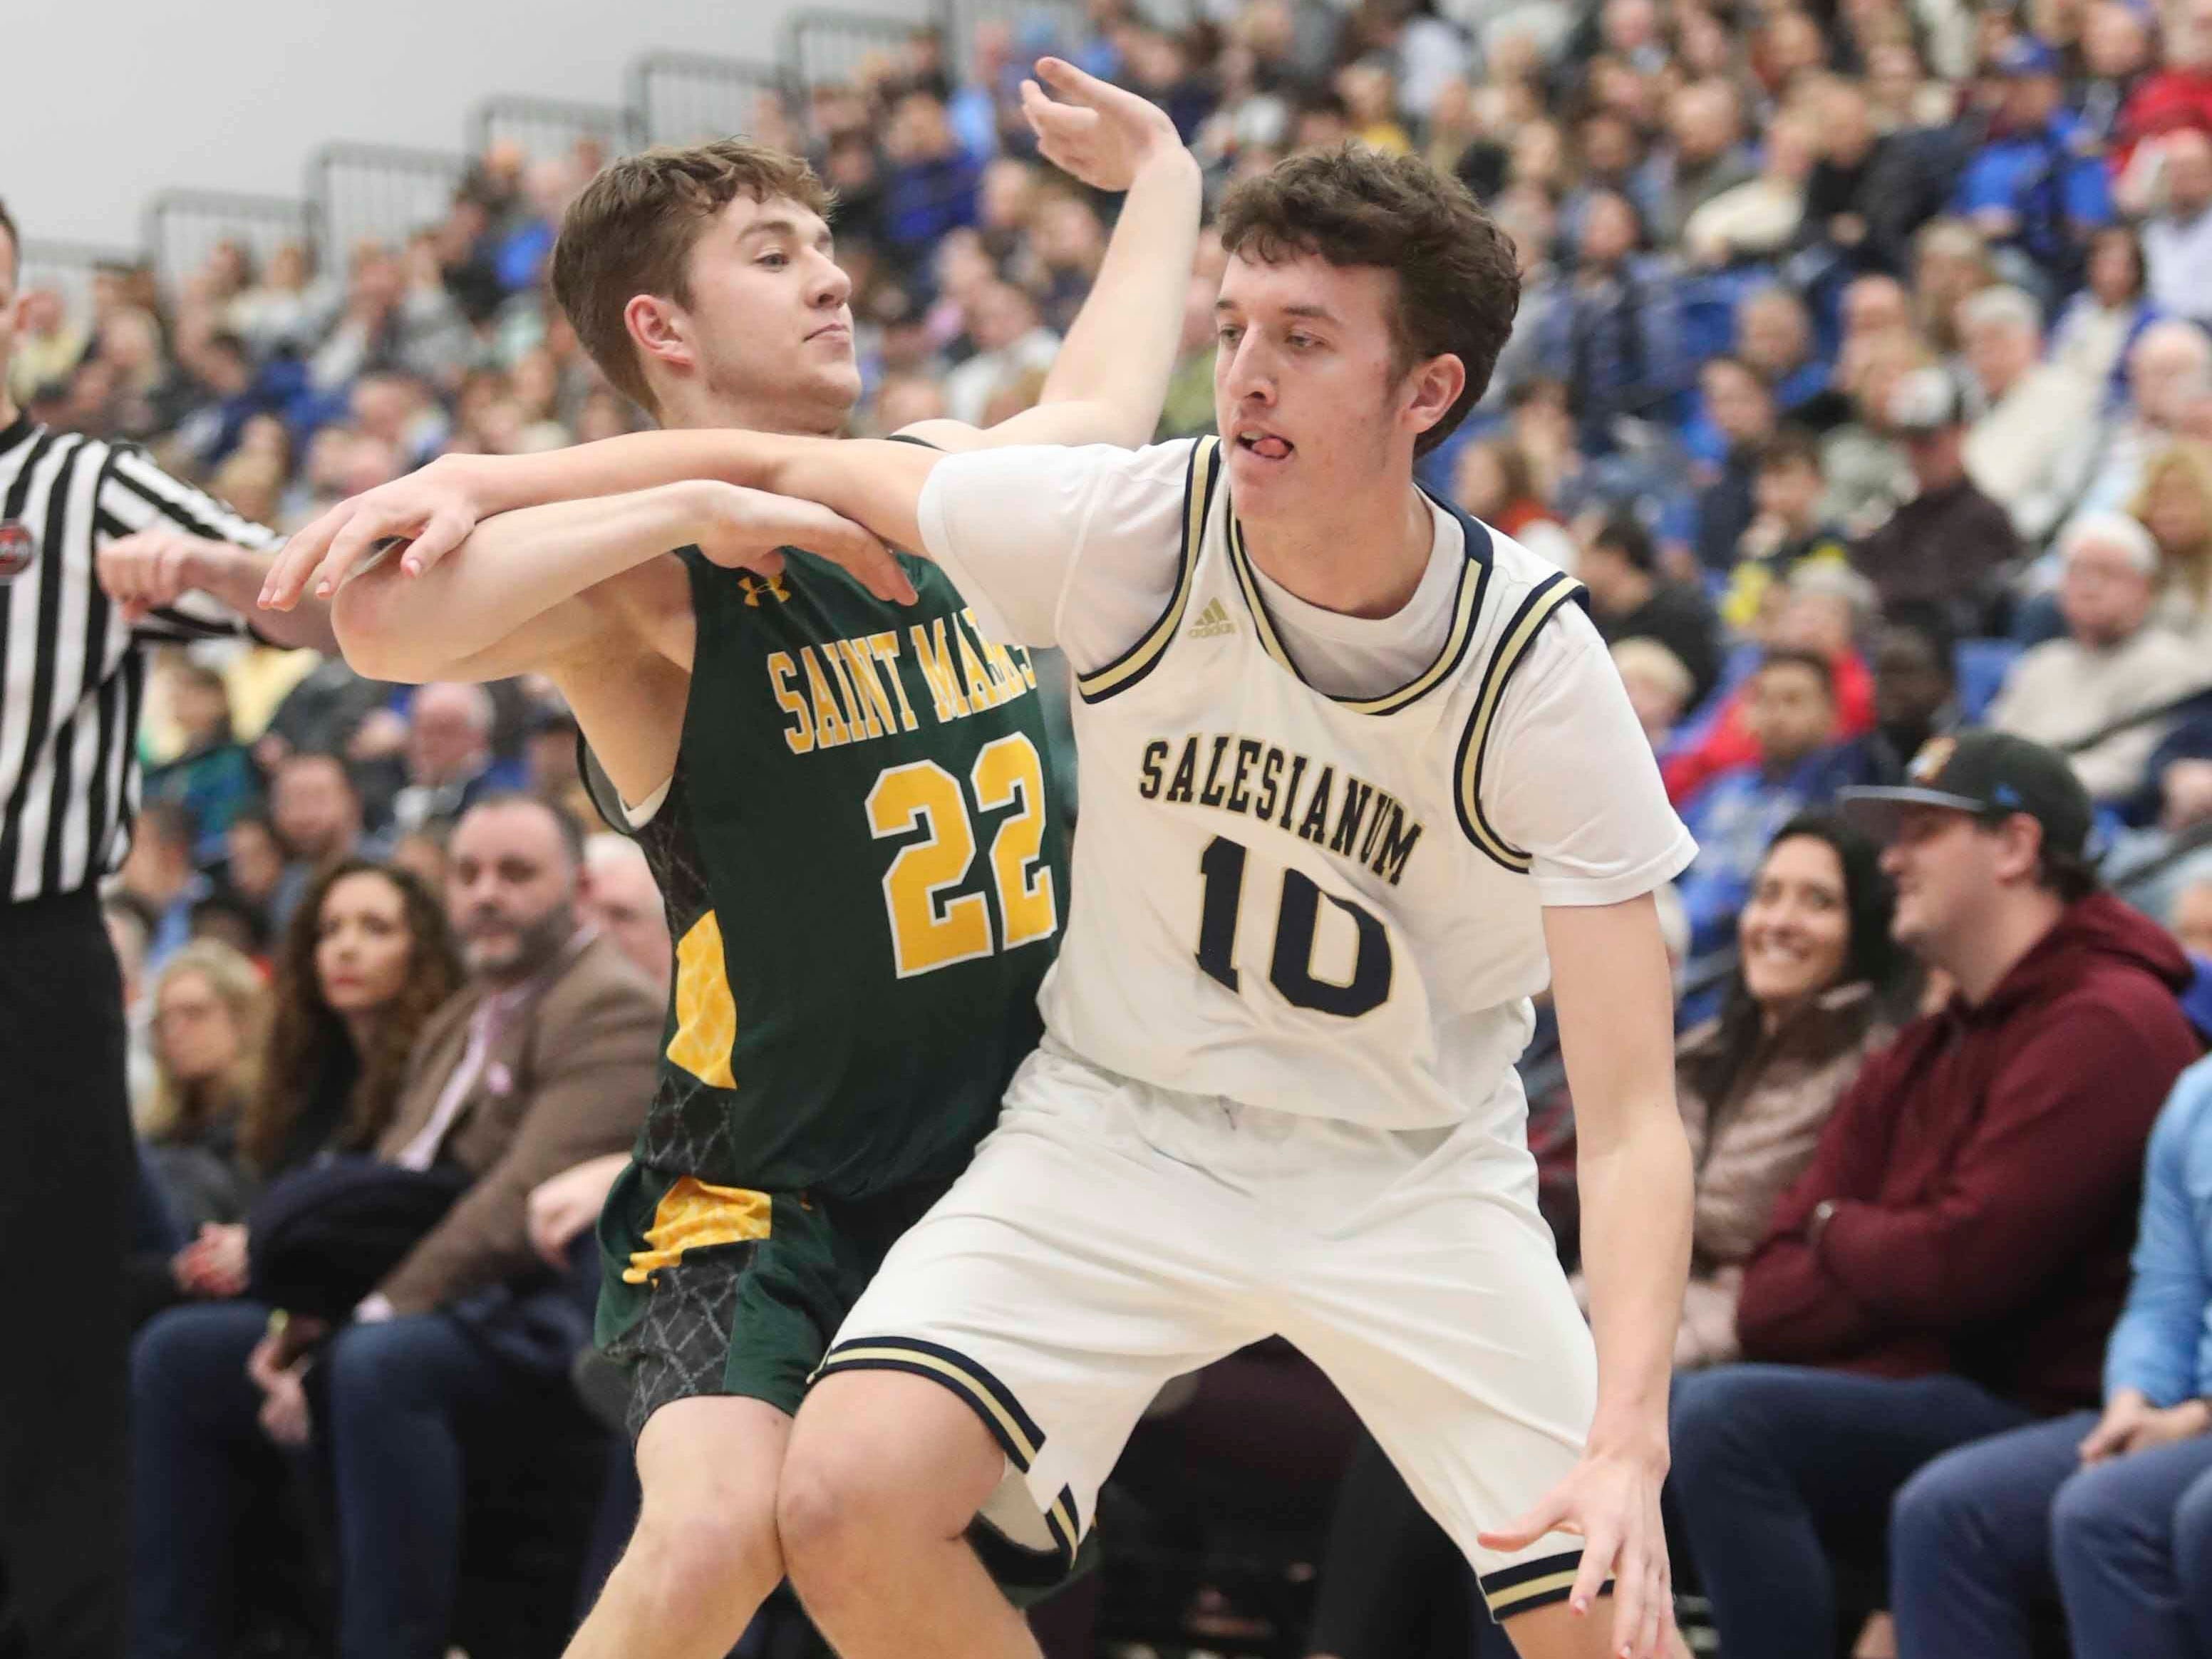 Salesianum's Jack Brown (right) tries to get past St. Mark's Michael Williams in the SL24 Memorial Basketball Classic at the 76ers Fieldhouse in Wilmington Friday.